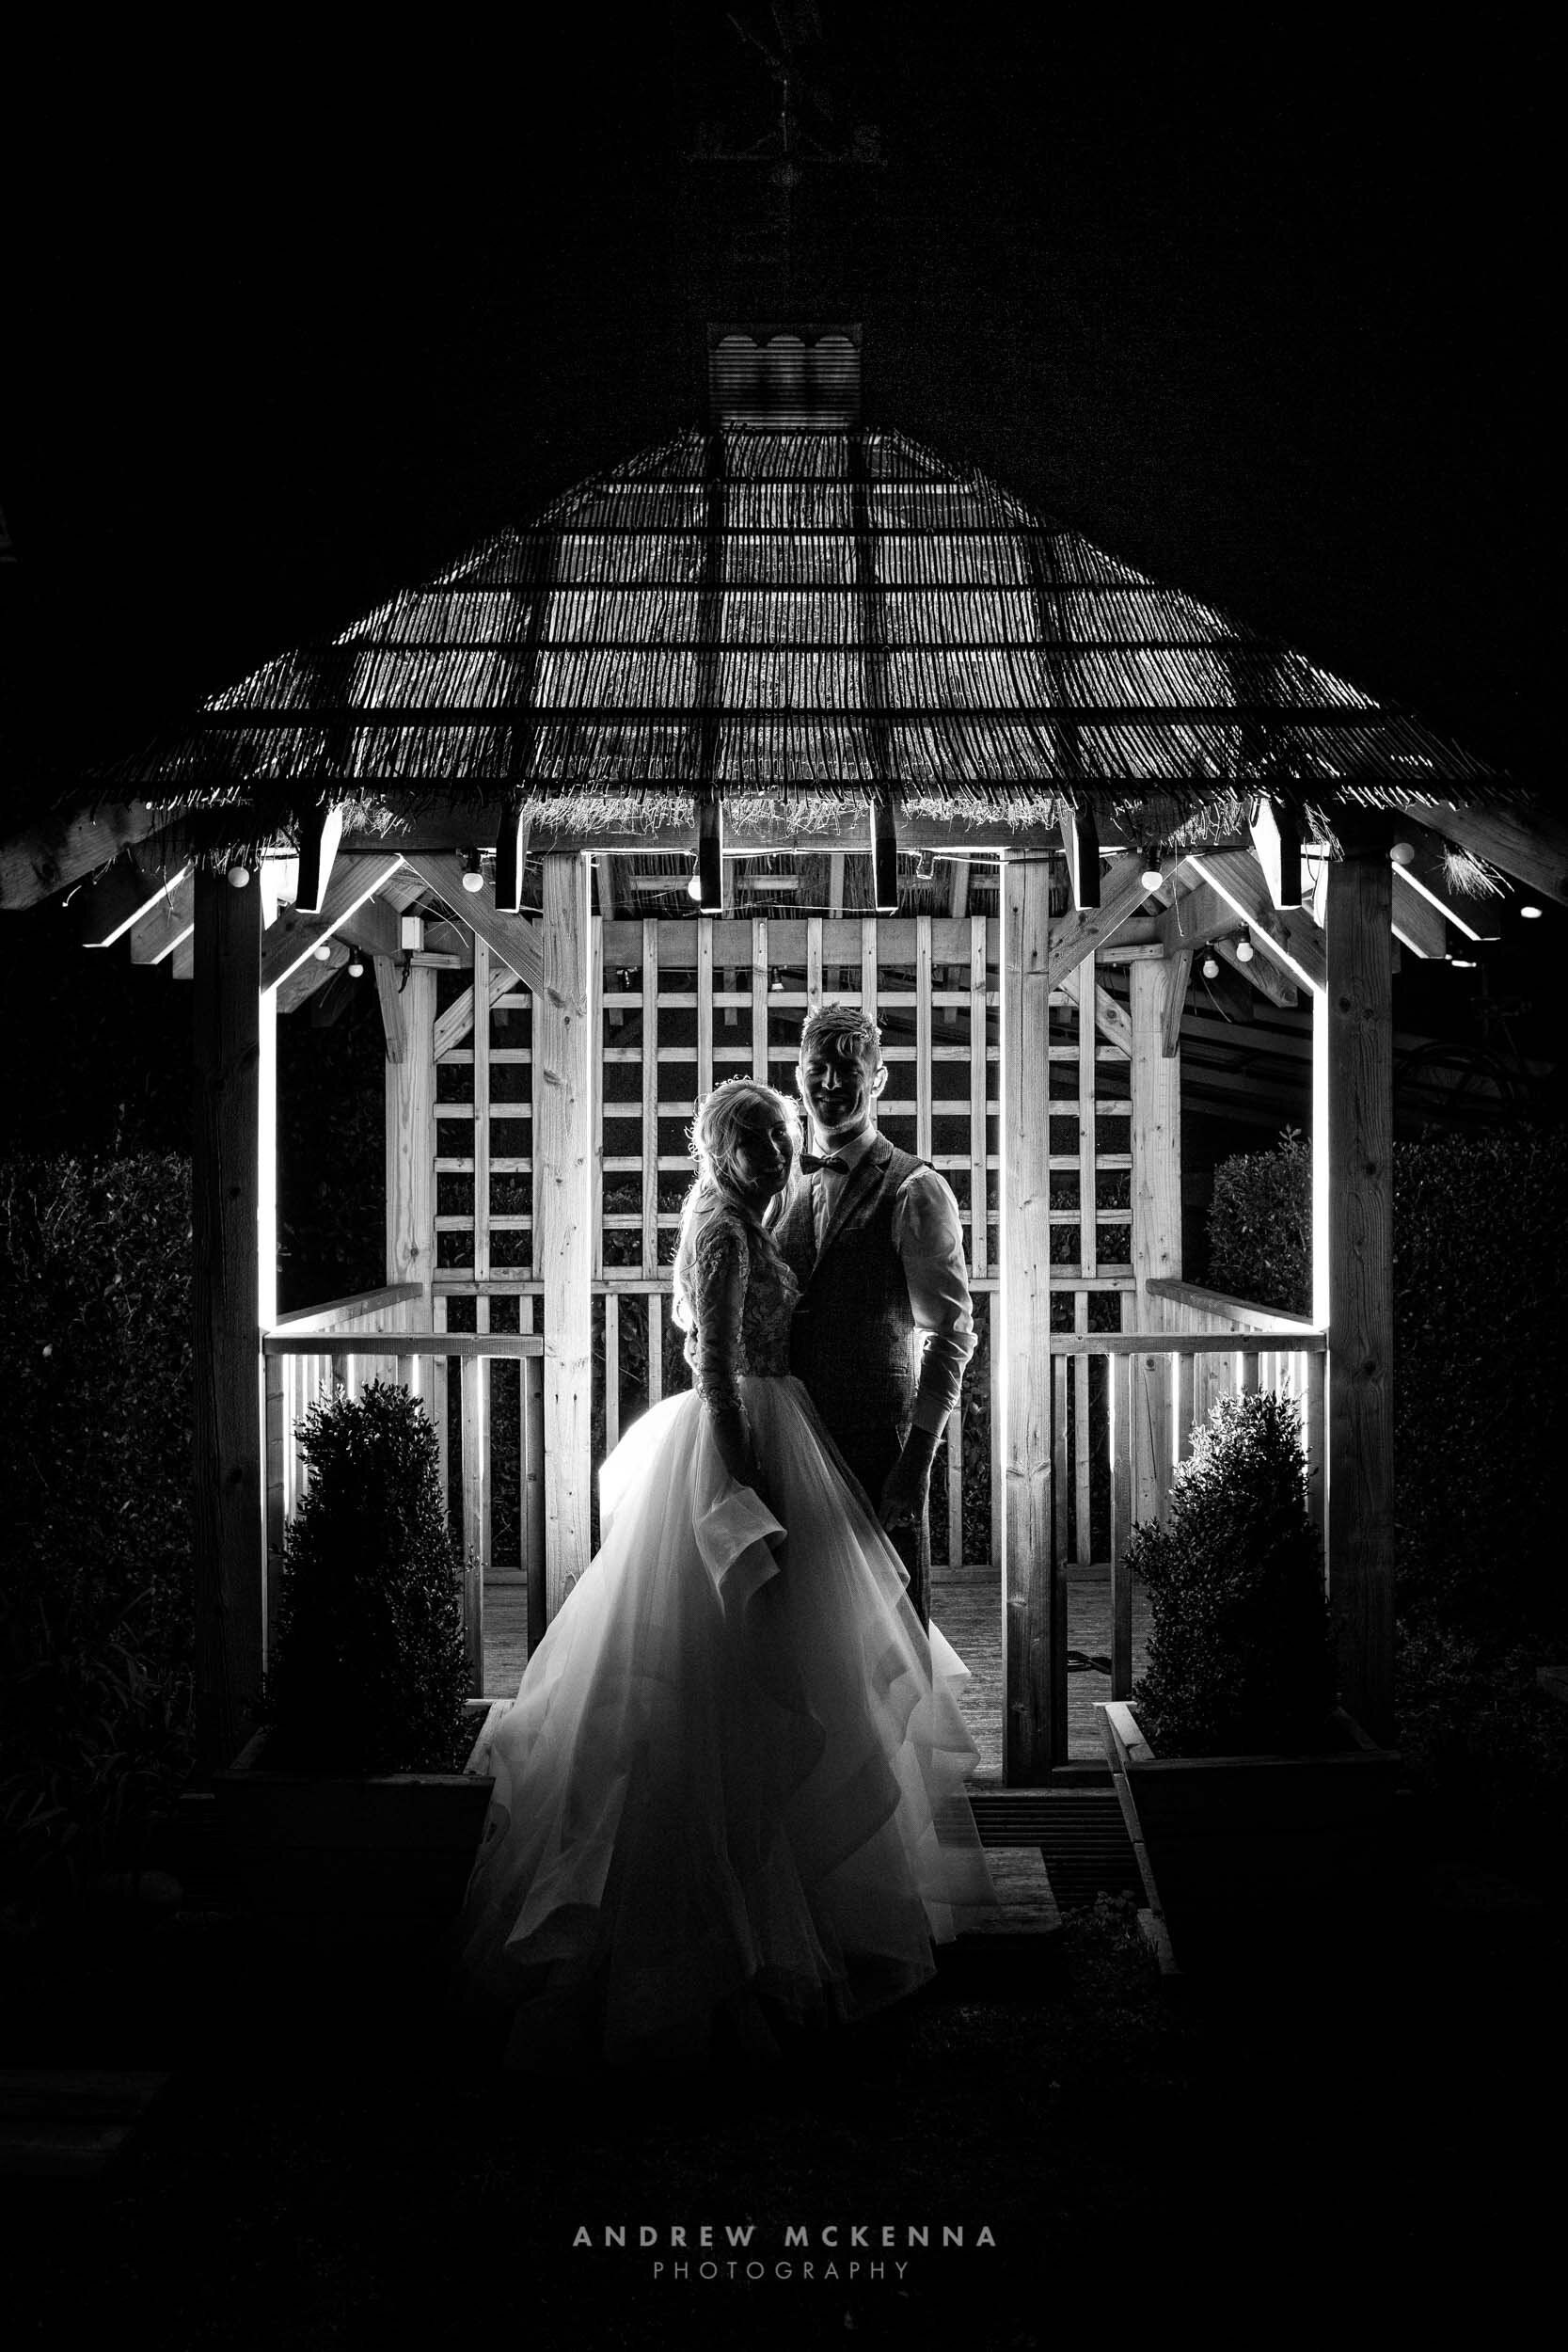 nor - Hugh McCanns's Wedding photography, County Down